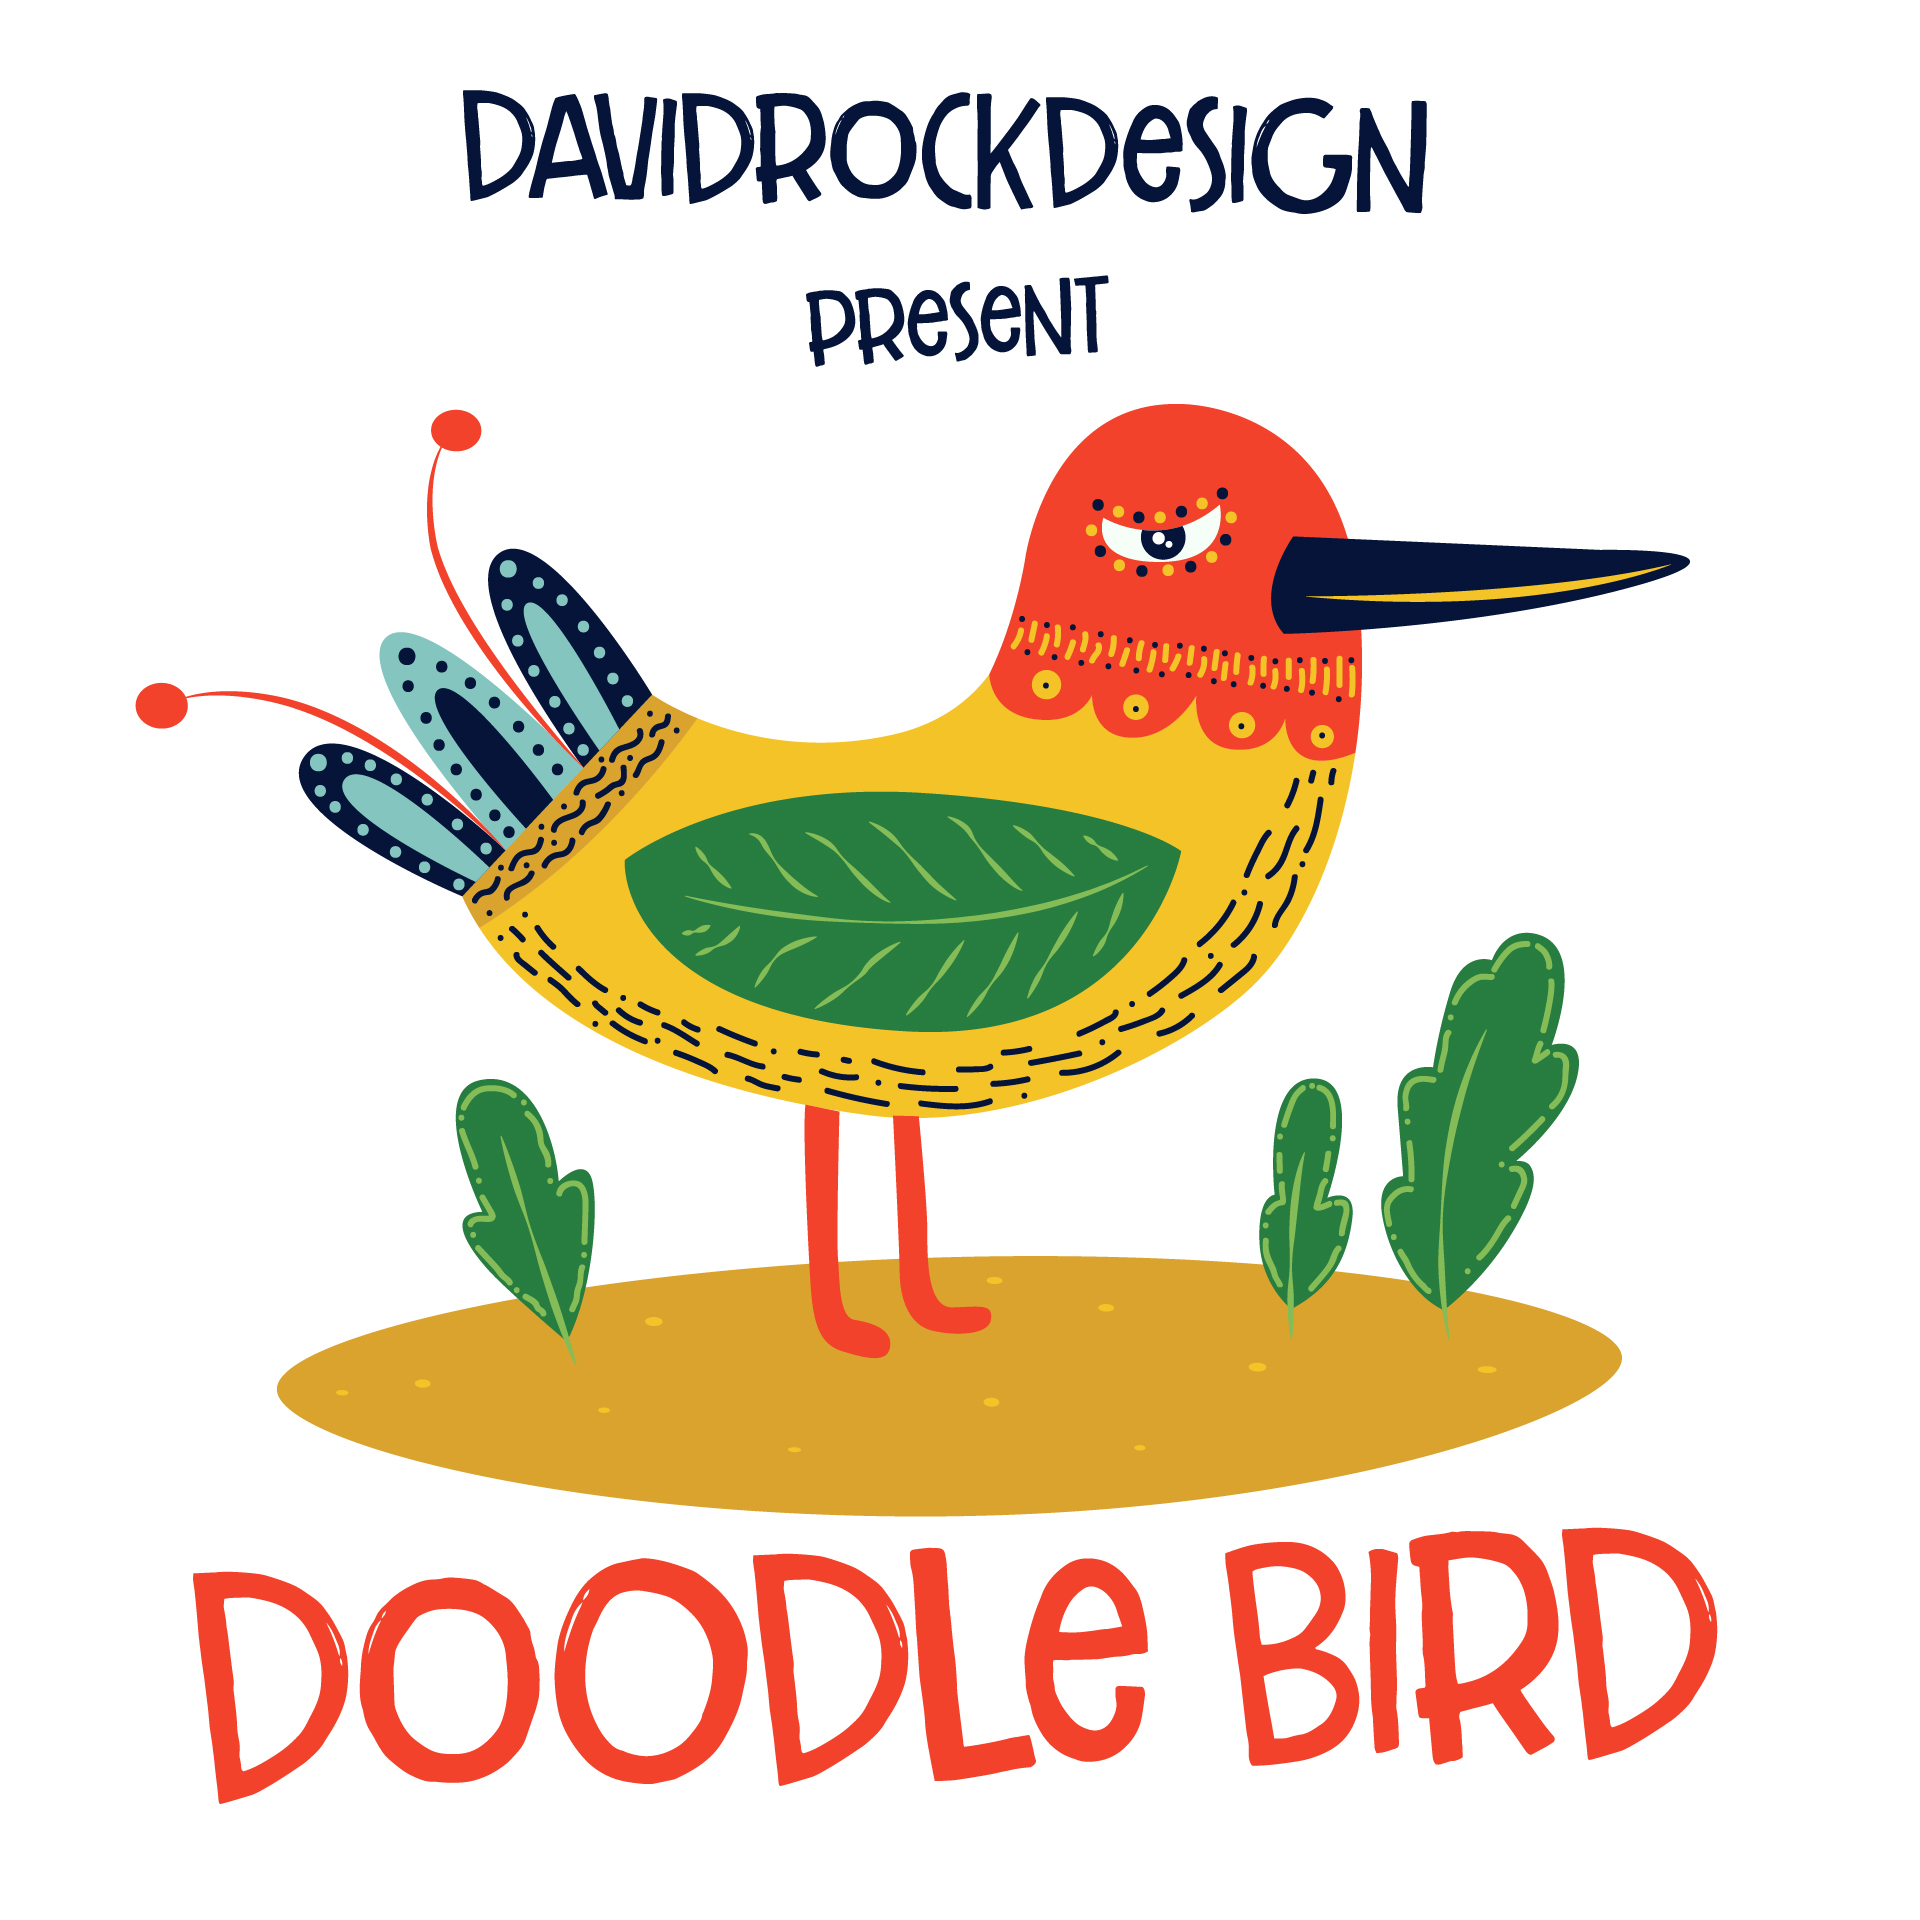 Download Free Doodle Bird Graphic By Davidrockdesign Creative Fabrica for Cricut Explore, Silhouette and other cutting machines.